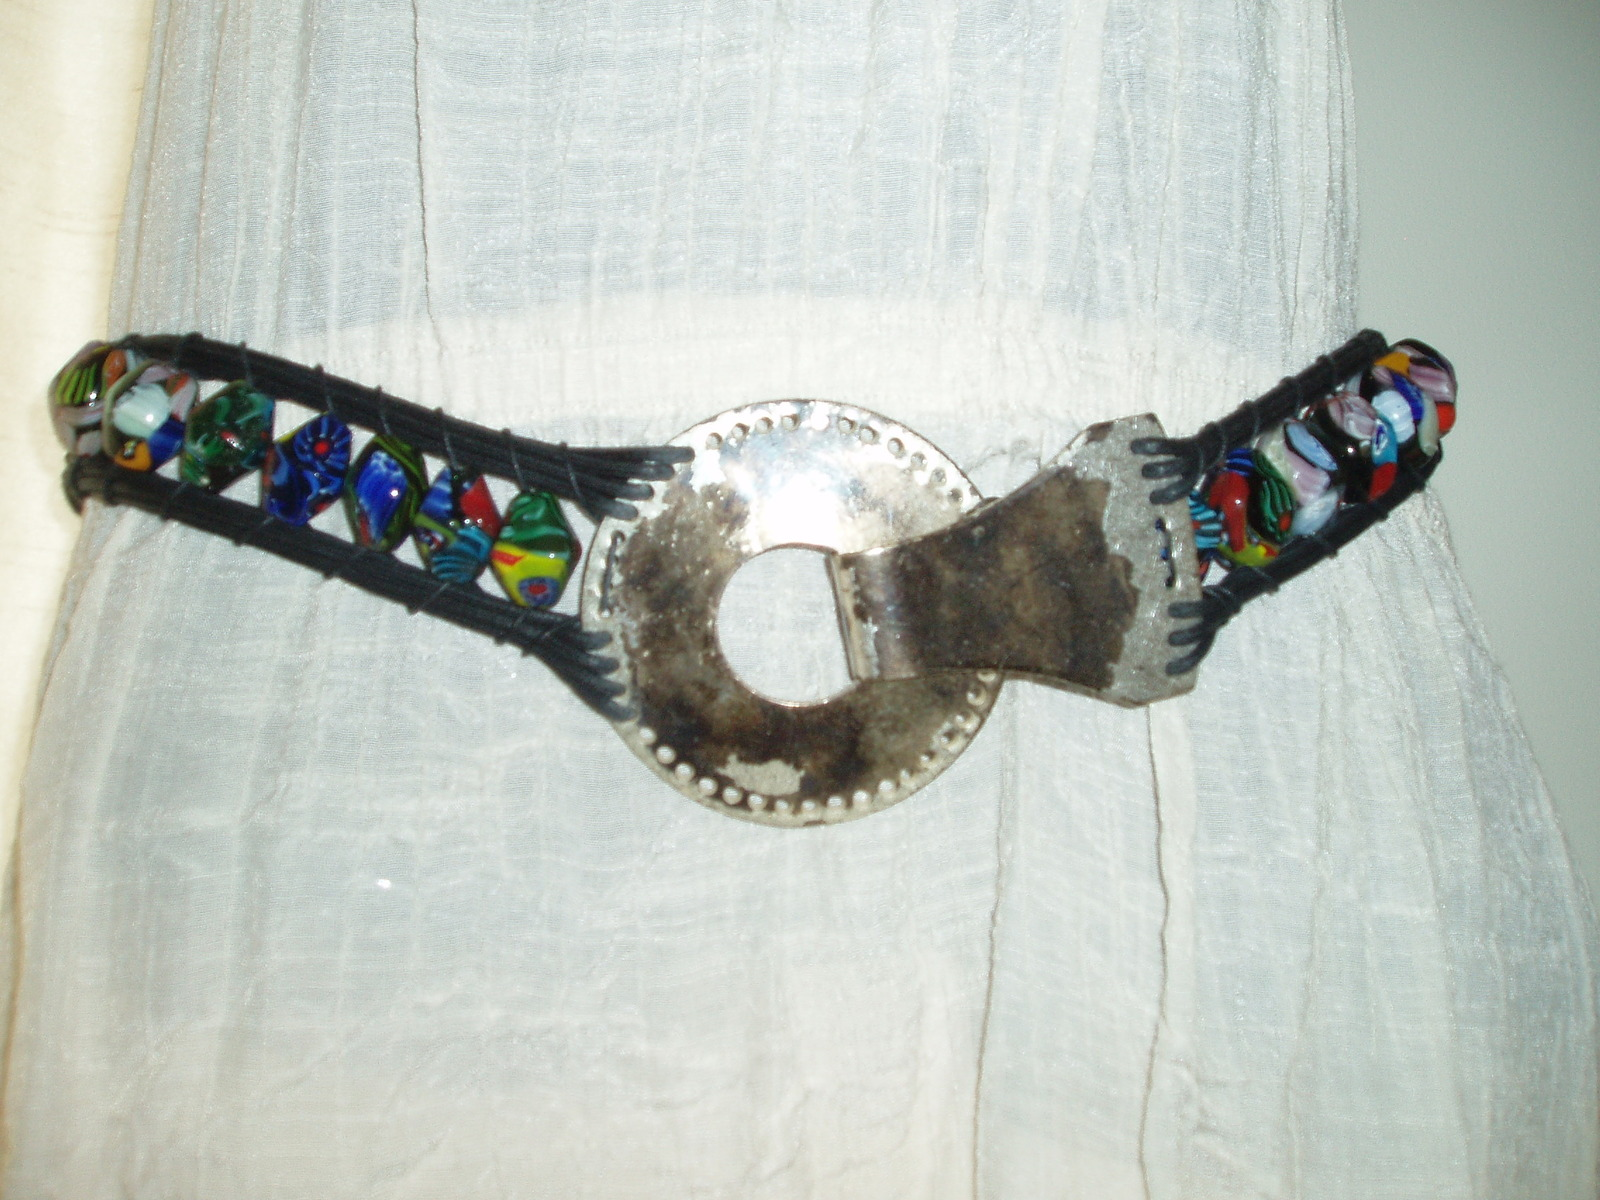 24.95$  Buy here - http://viuht.justgood.pw/vig/item.php?t=l9kf7ar10559 - Chicos blown glass beaded belt S/M 38 x 1.5 inches tip to tip buckle worn look 24.95$